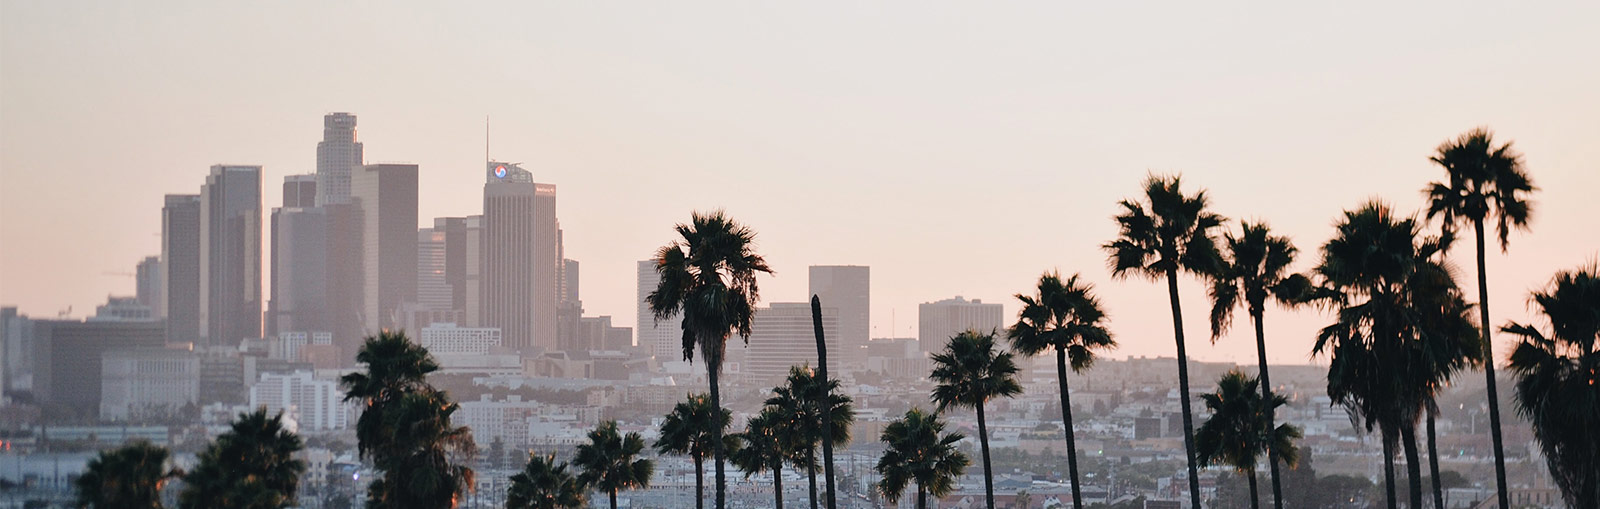 Community_Clinic-DowntownLA_Valley